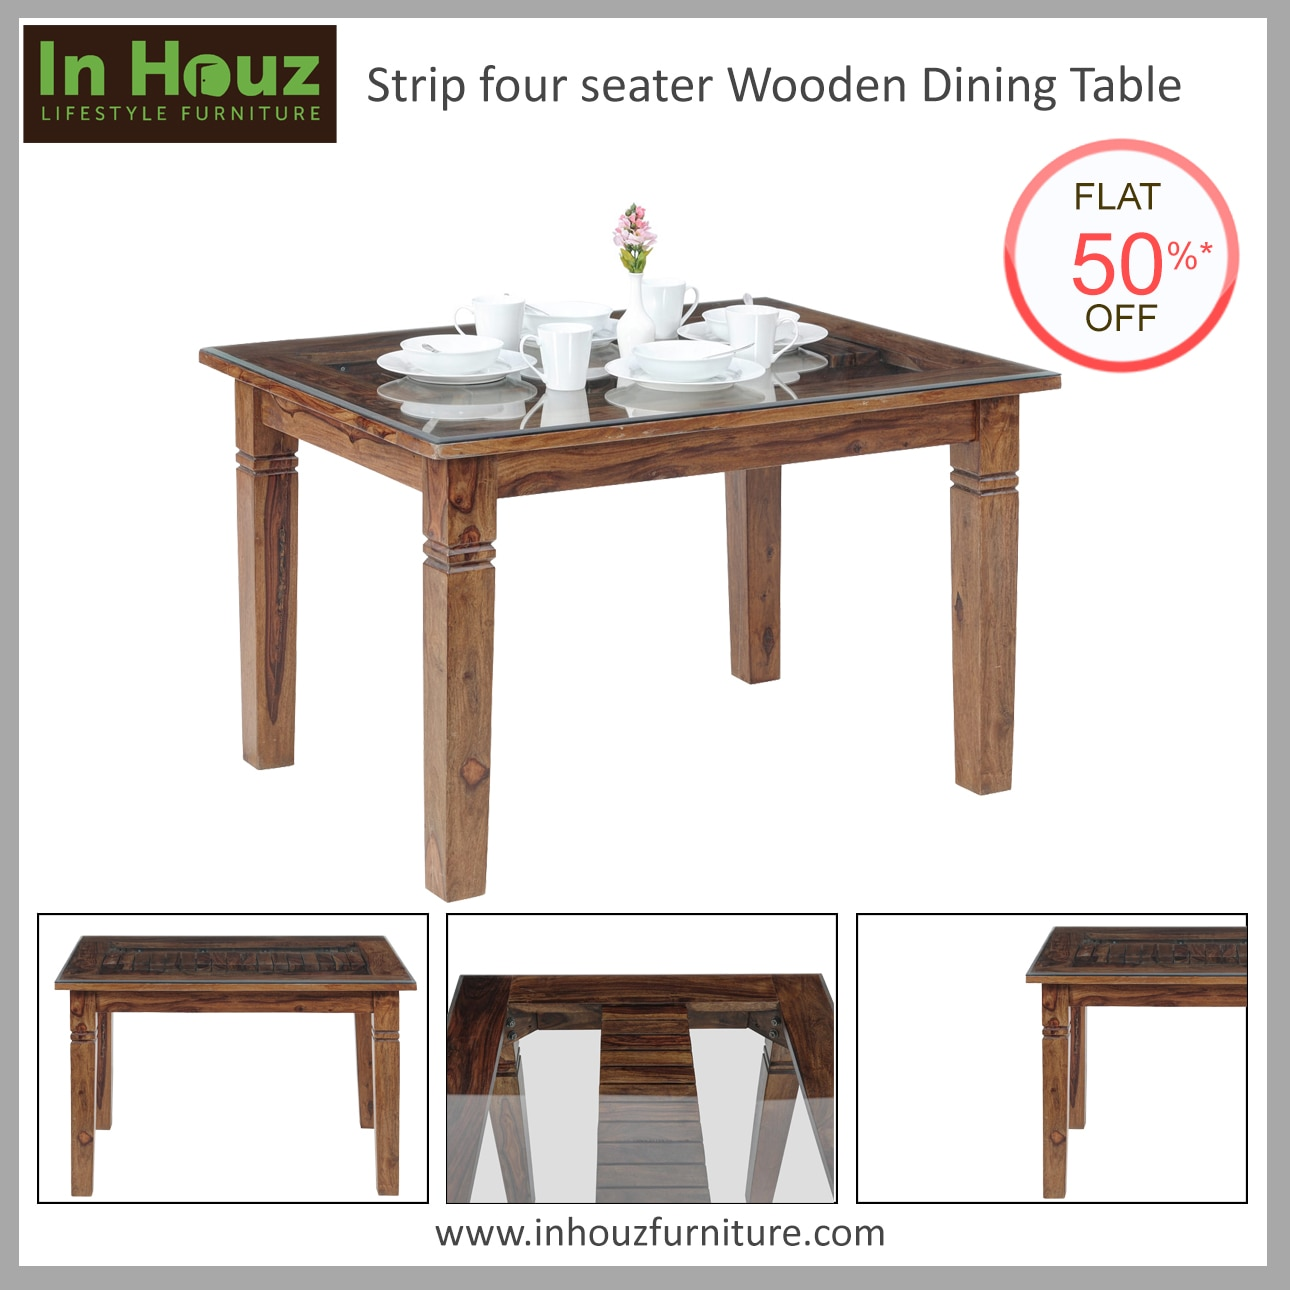 With a gorgeous finish and simple design, this Four-Seater Dining Table is a perfect fit for all homes.  #DiningTable #OnlineDiningTables #SheeshamWoodDiningTable  #OnlineFurnitureSale #DiningRoomFurniture #FourSeaterDiningTable #DiningSetDesign #BestFurnitureWebsitesInIndia #Inhouz #InhouzFurniture #BuyFurnitureOnlineInMumbai  Shop now at www.inhouzfurniture.com